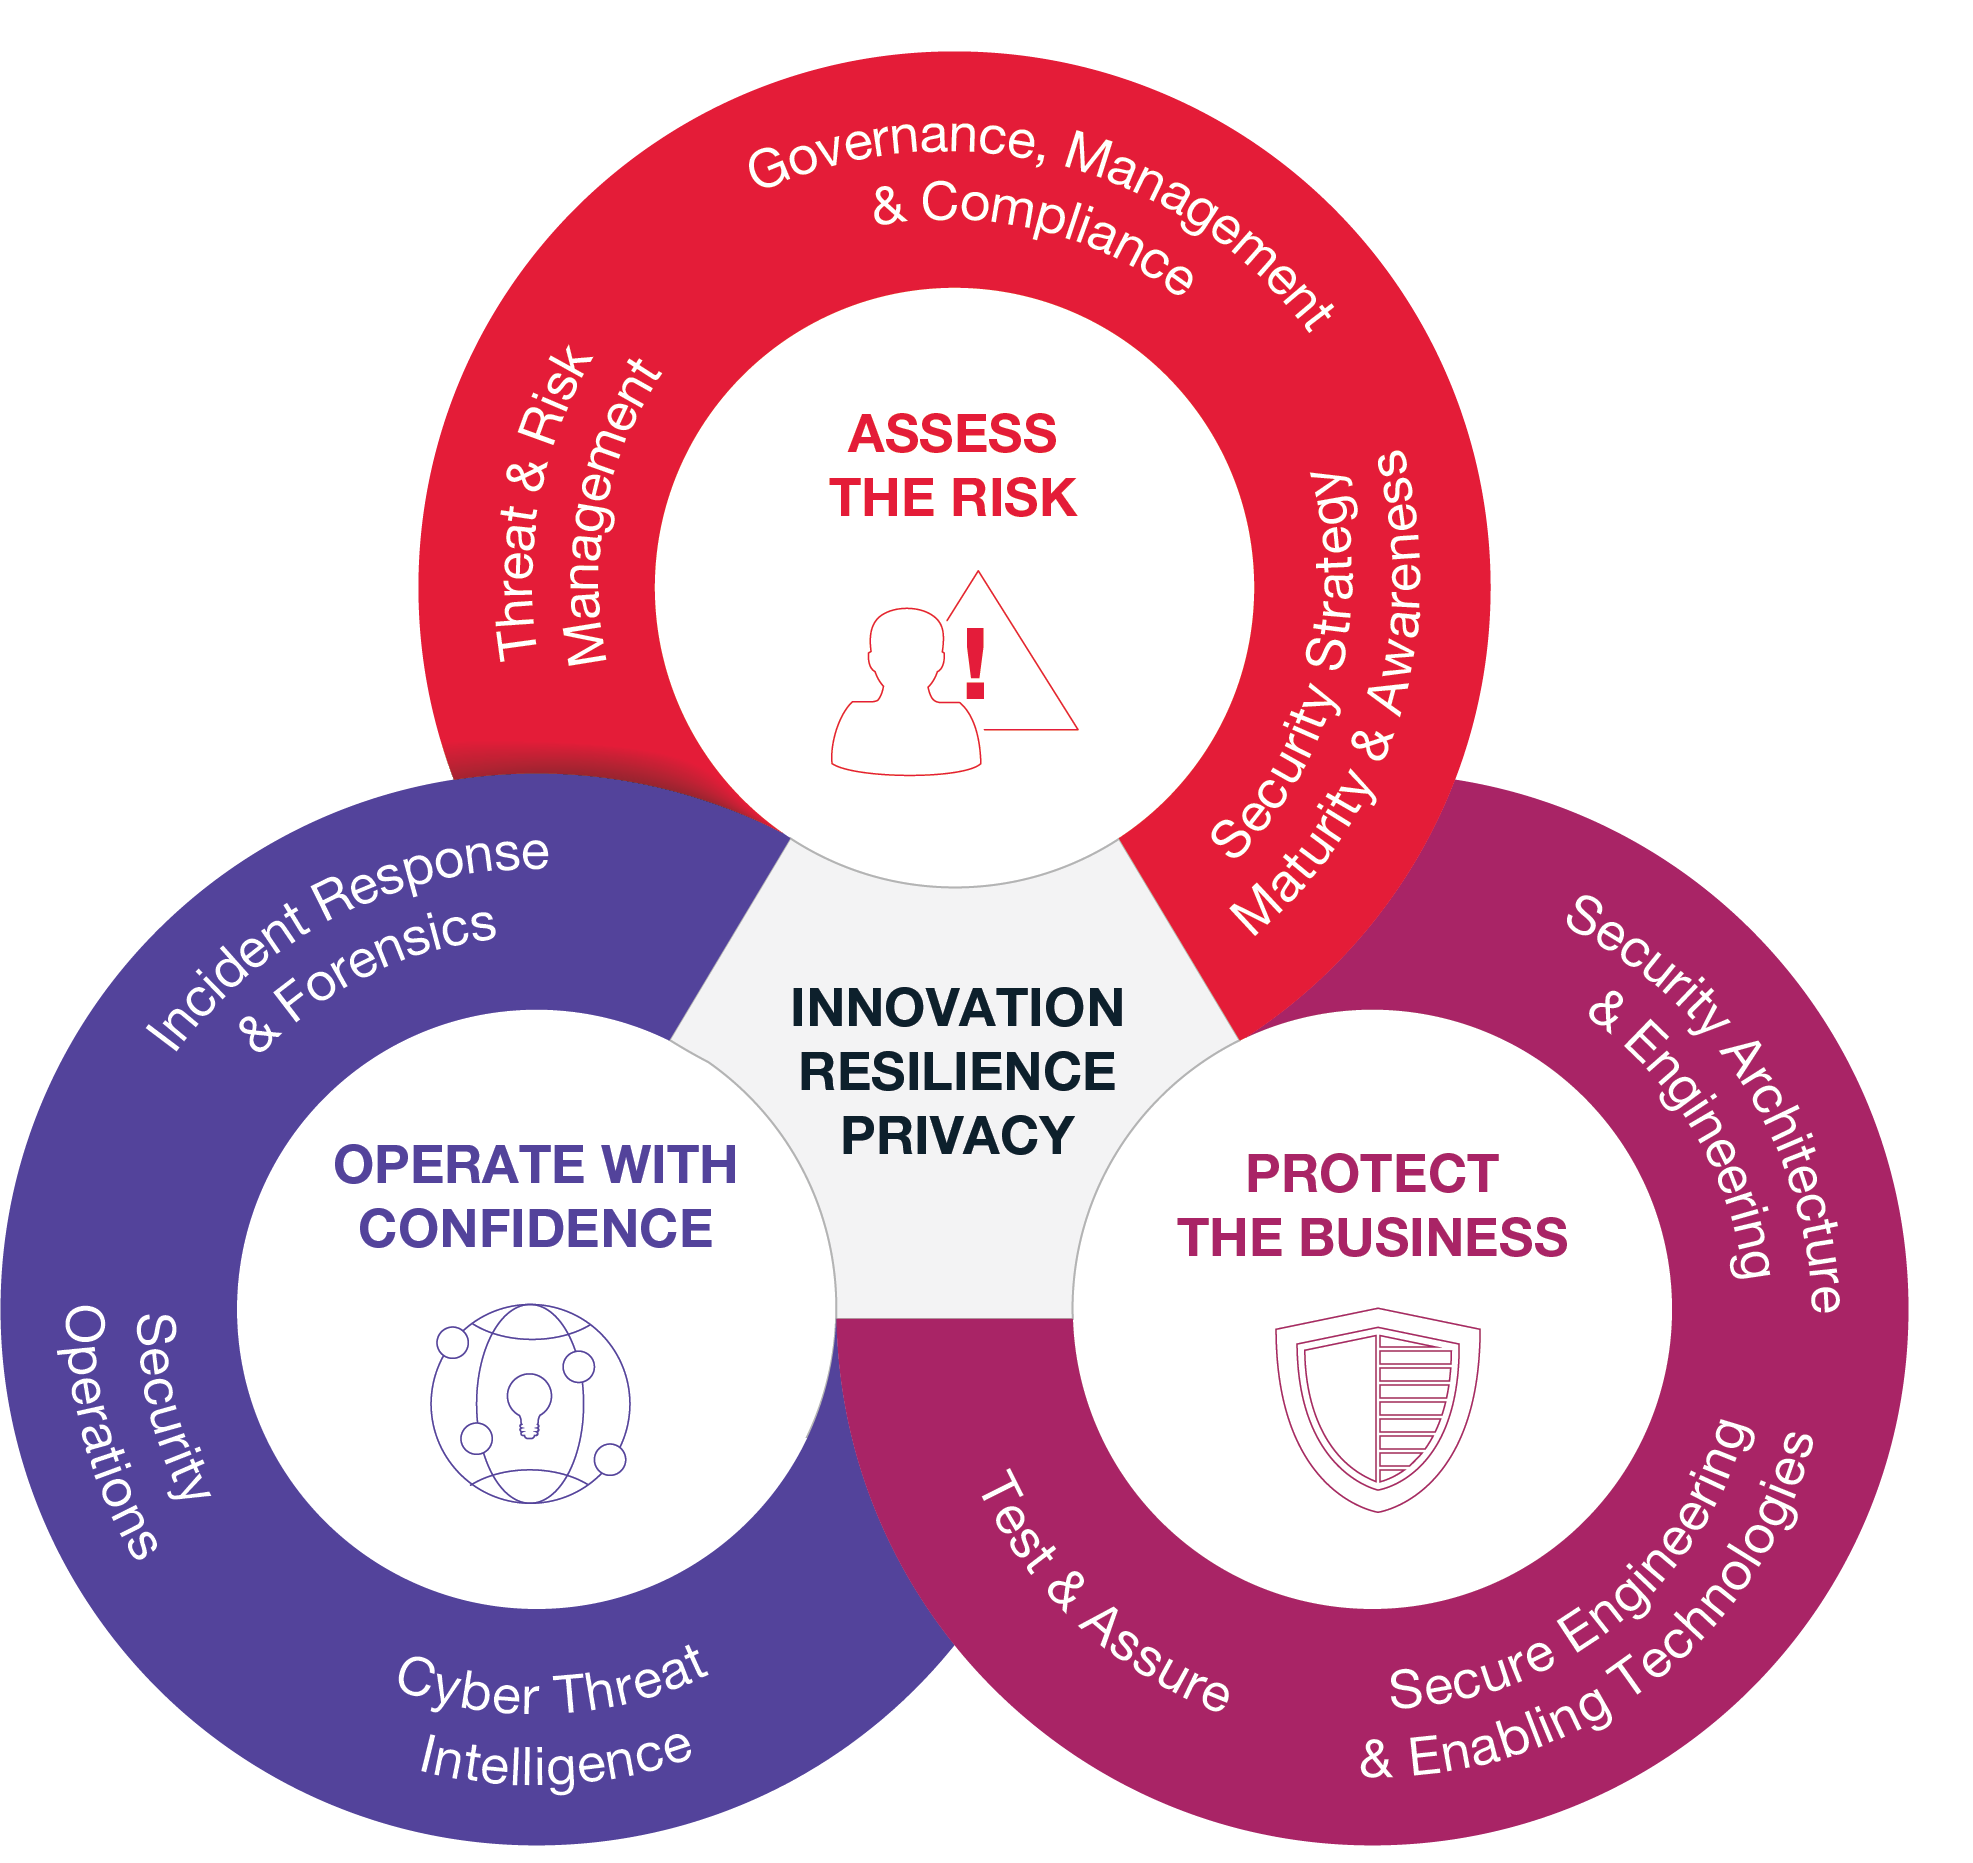 CGI Cyber Security – Assess, protect and operate with confidence